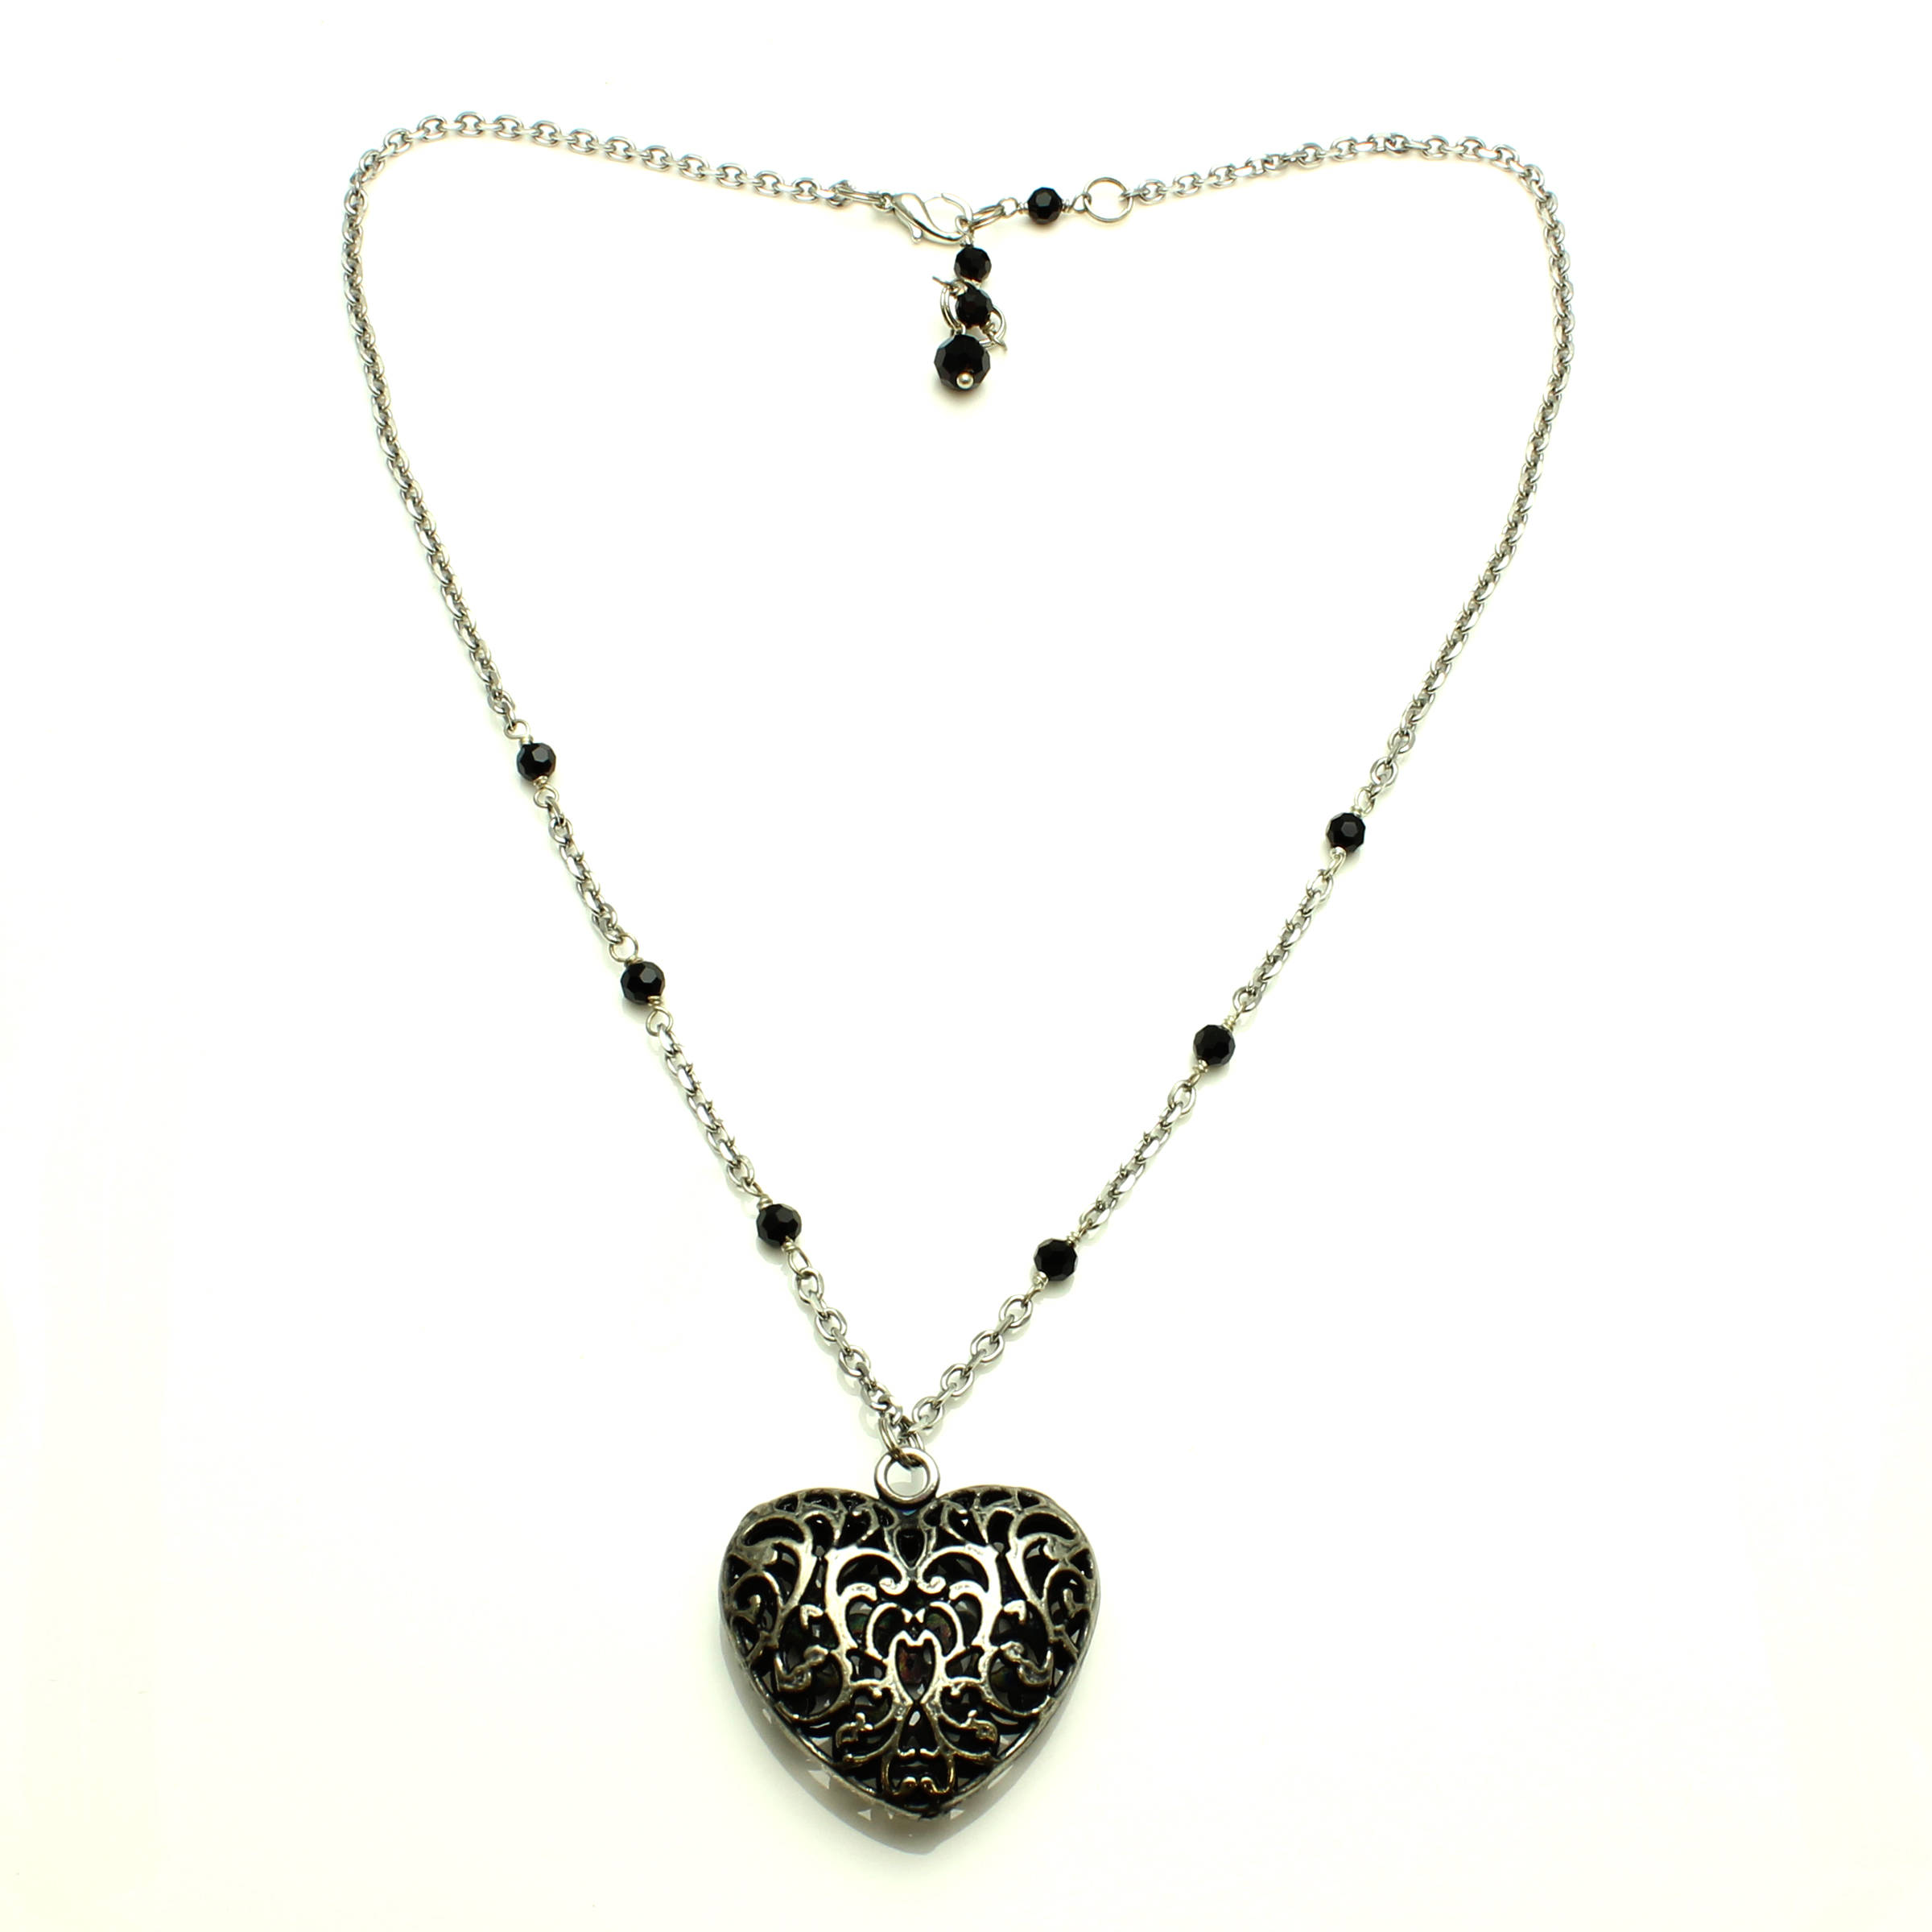 Starfish Project, Heart Pendant with Black Crystal Beads on a Silver Adjustable Chain 19-21 Inches